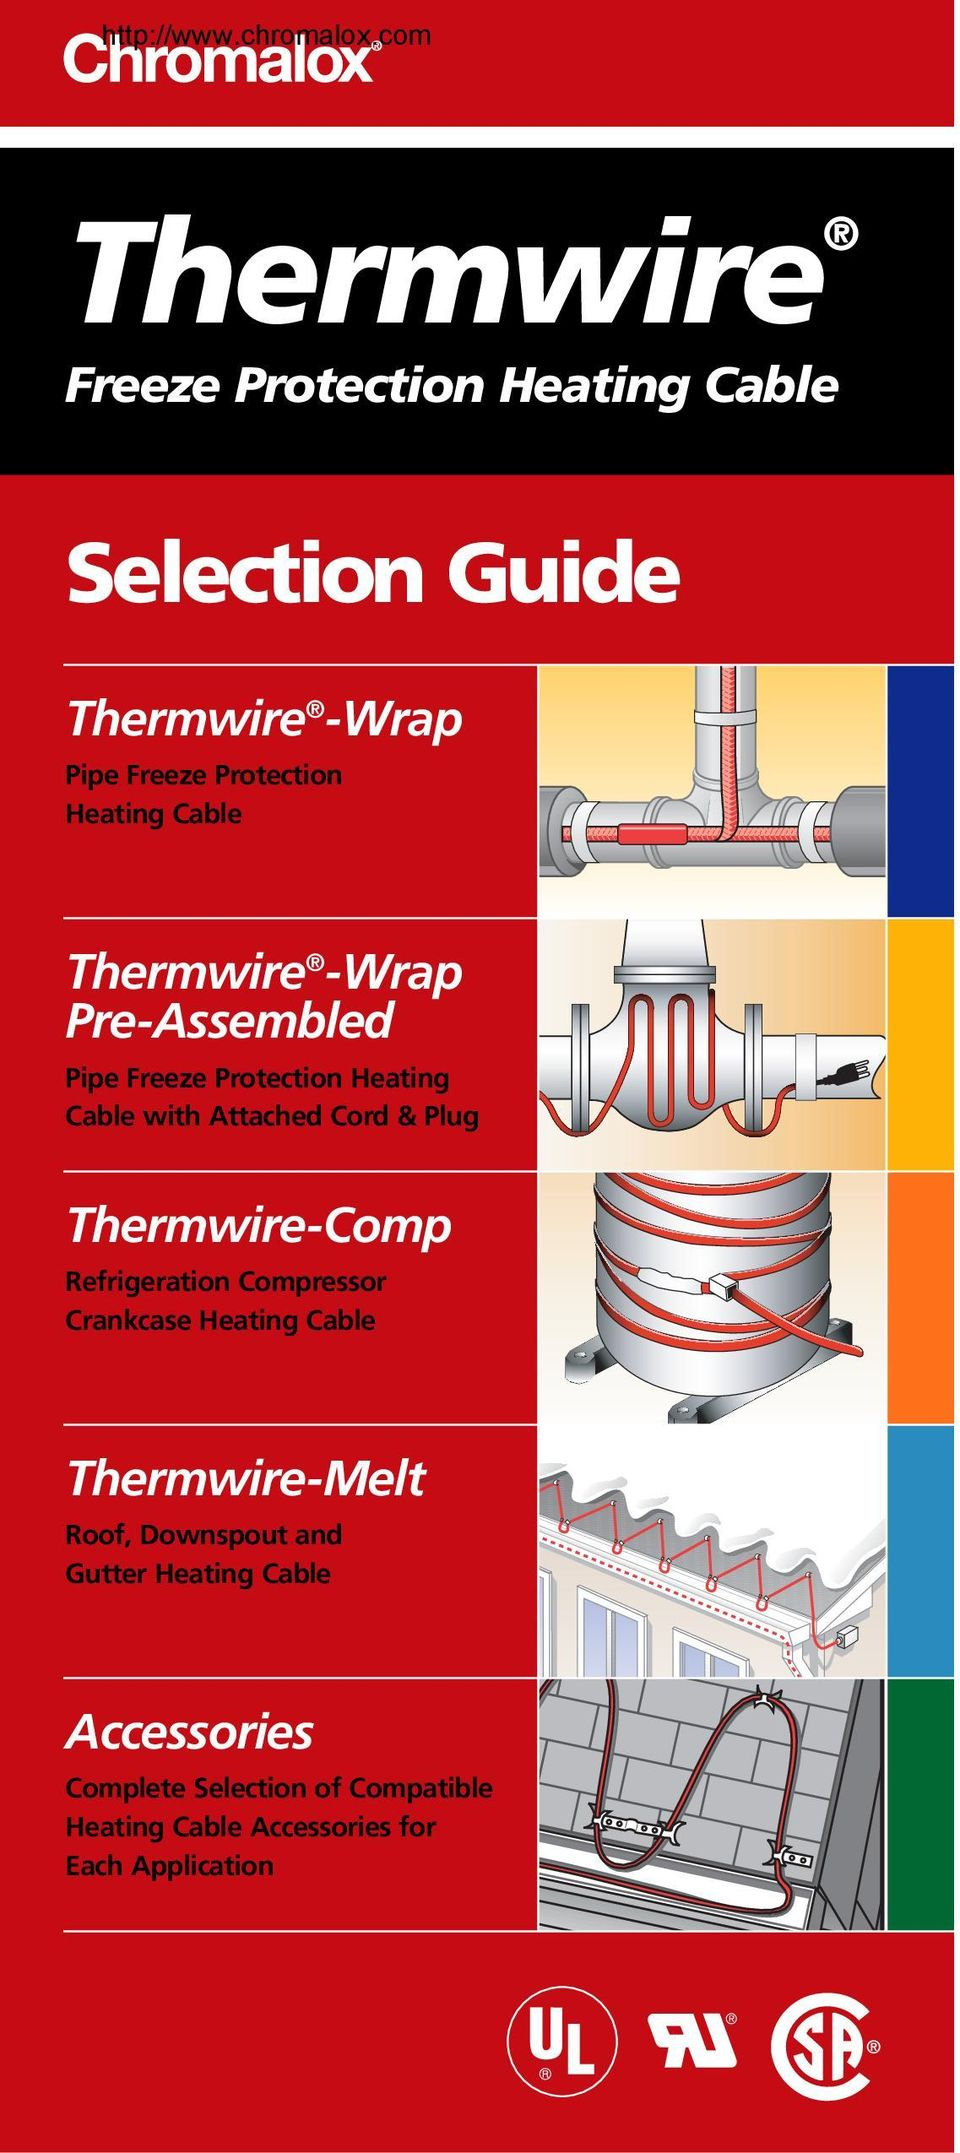 Refrigeration Compressor Crankcase Heating Cable Thermwire-Melt Roof, Downspout and Gutter